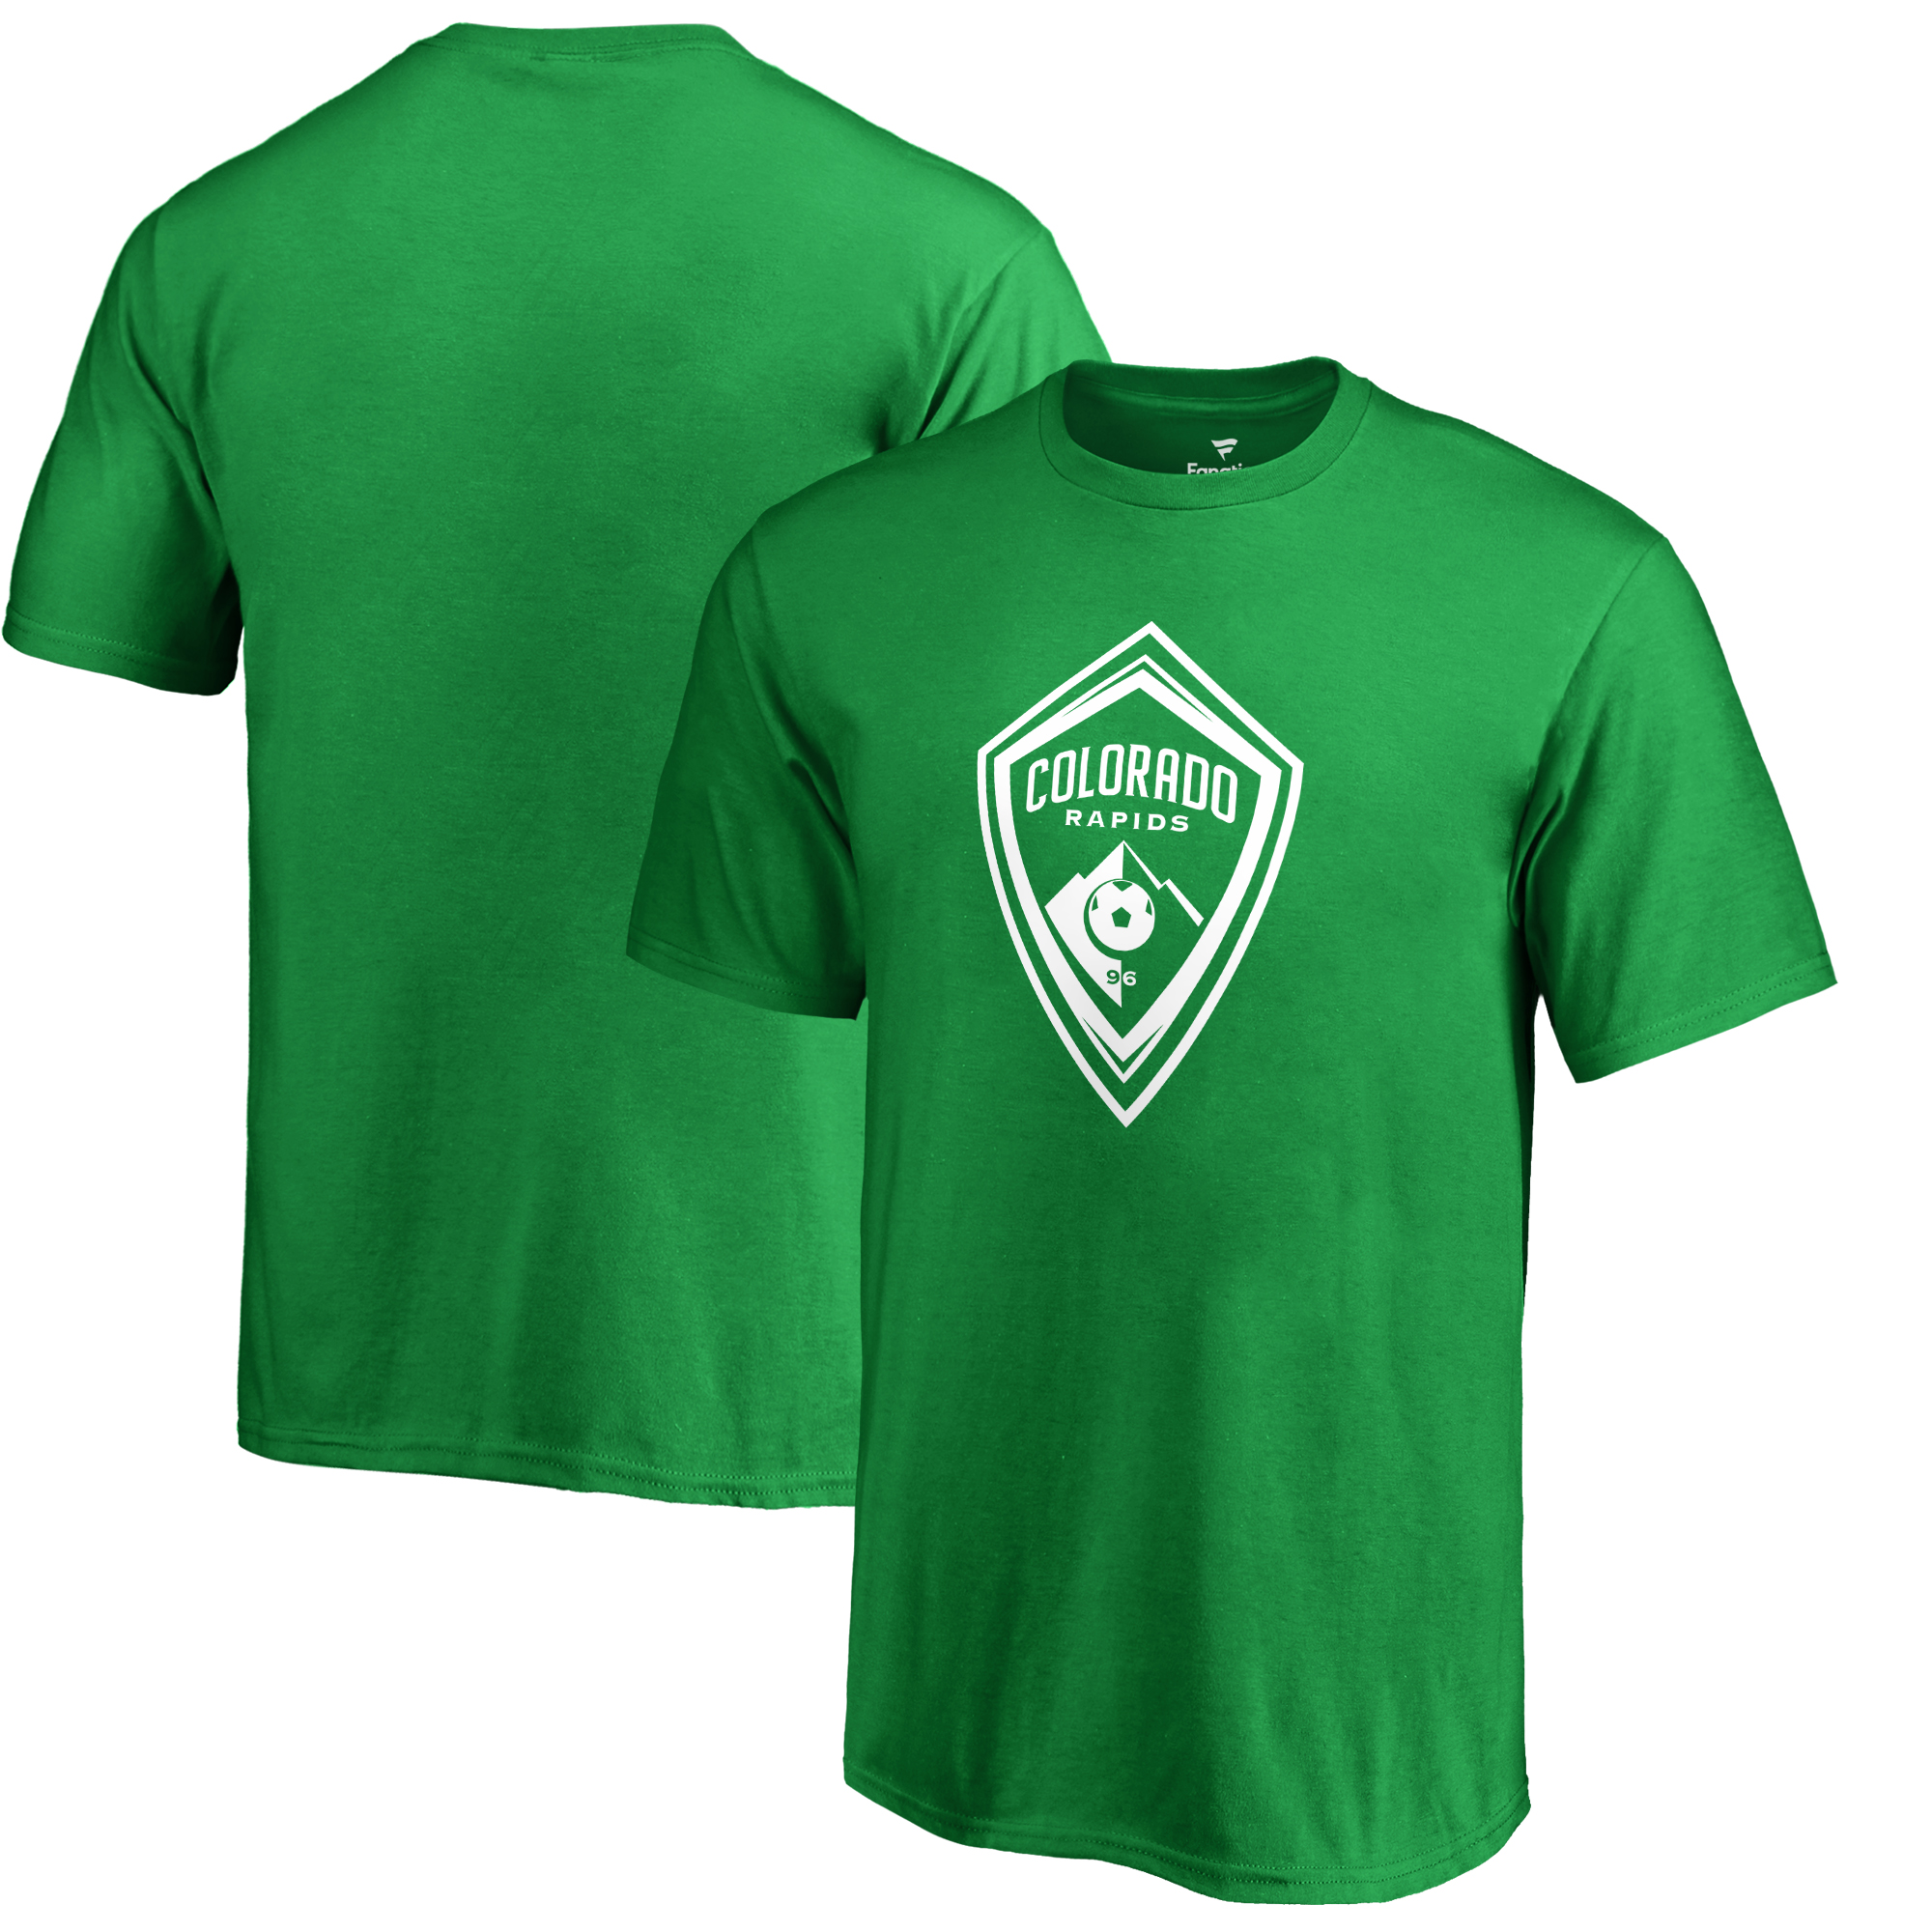 Colorado Rapids Fanatics Branded Youth St. Patrick's Day White Logo T-Shirt - Kelly Green